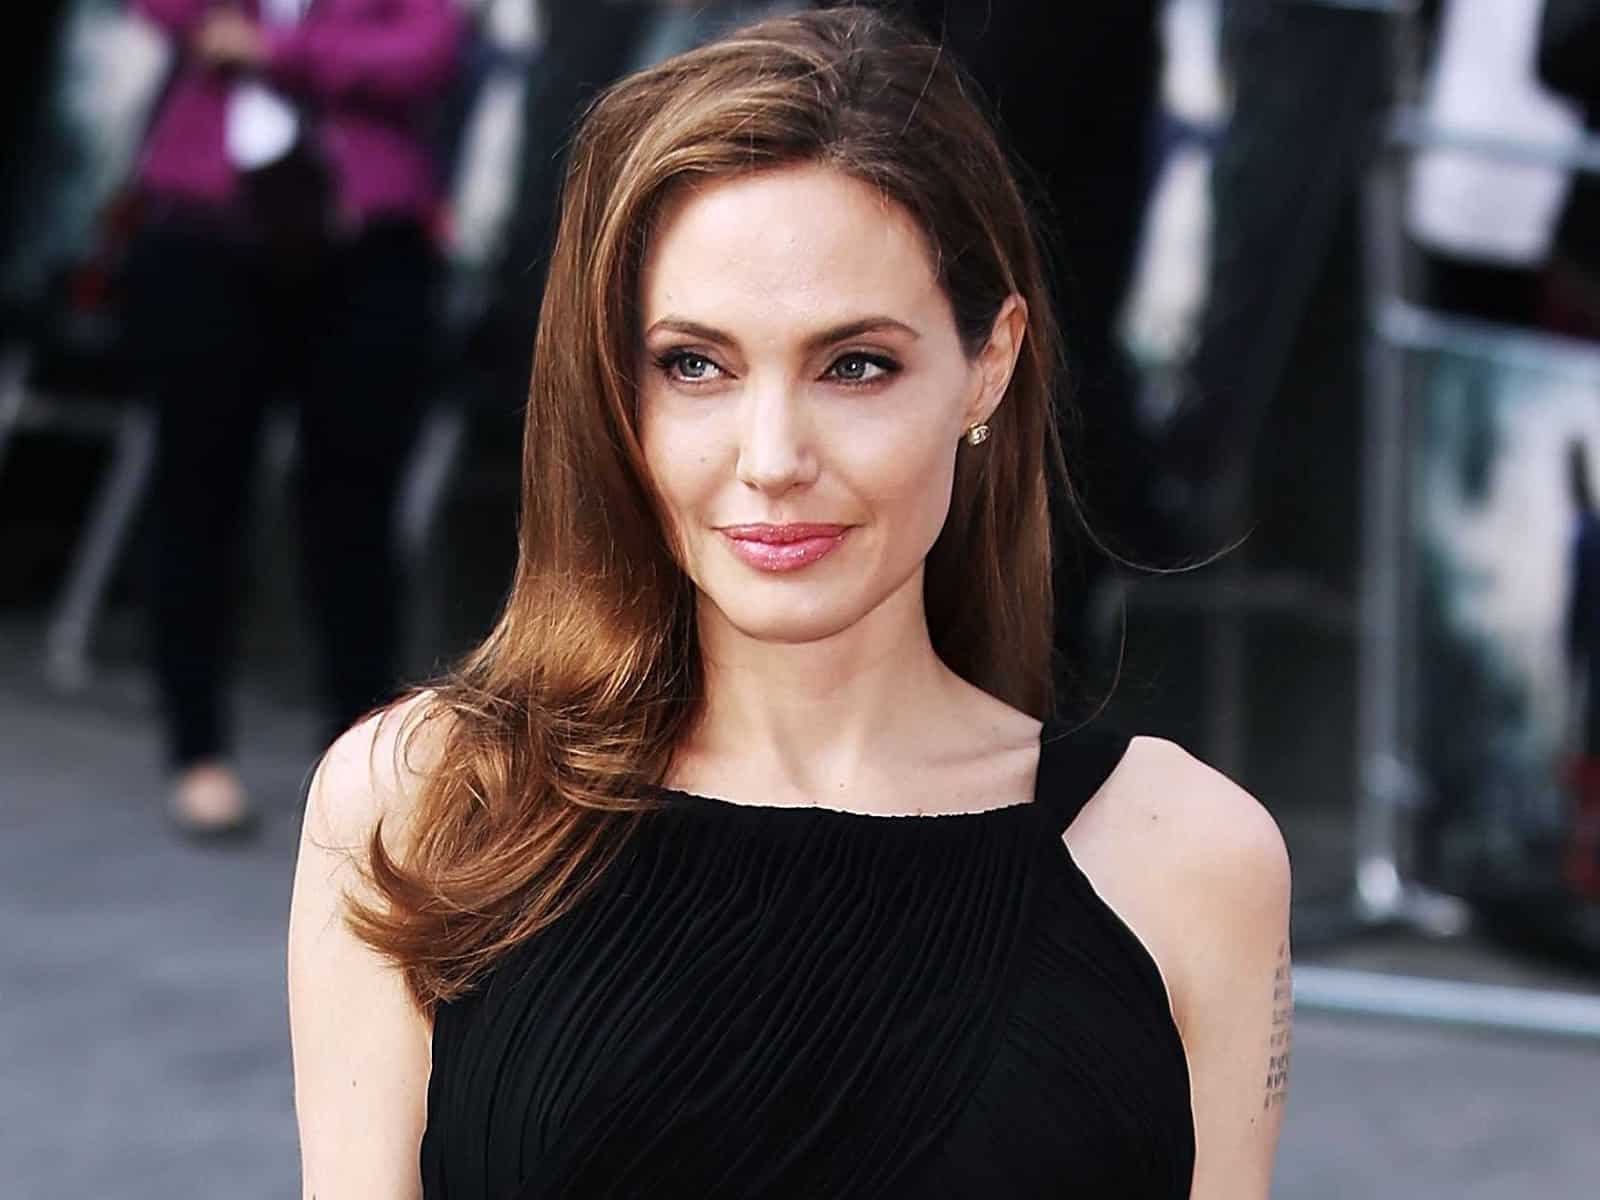 Top 10 Most Popular Hollywood Actresses In 2020 - Angelina Jolie